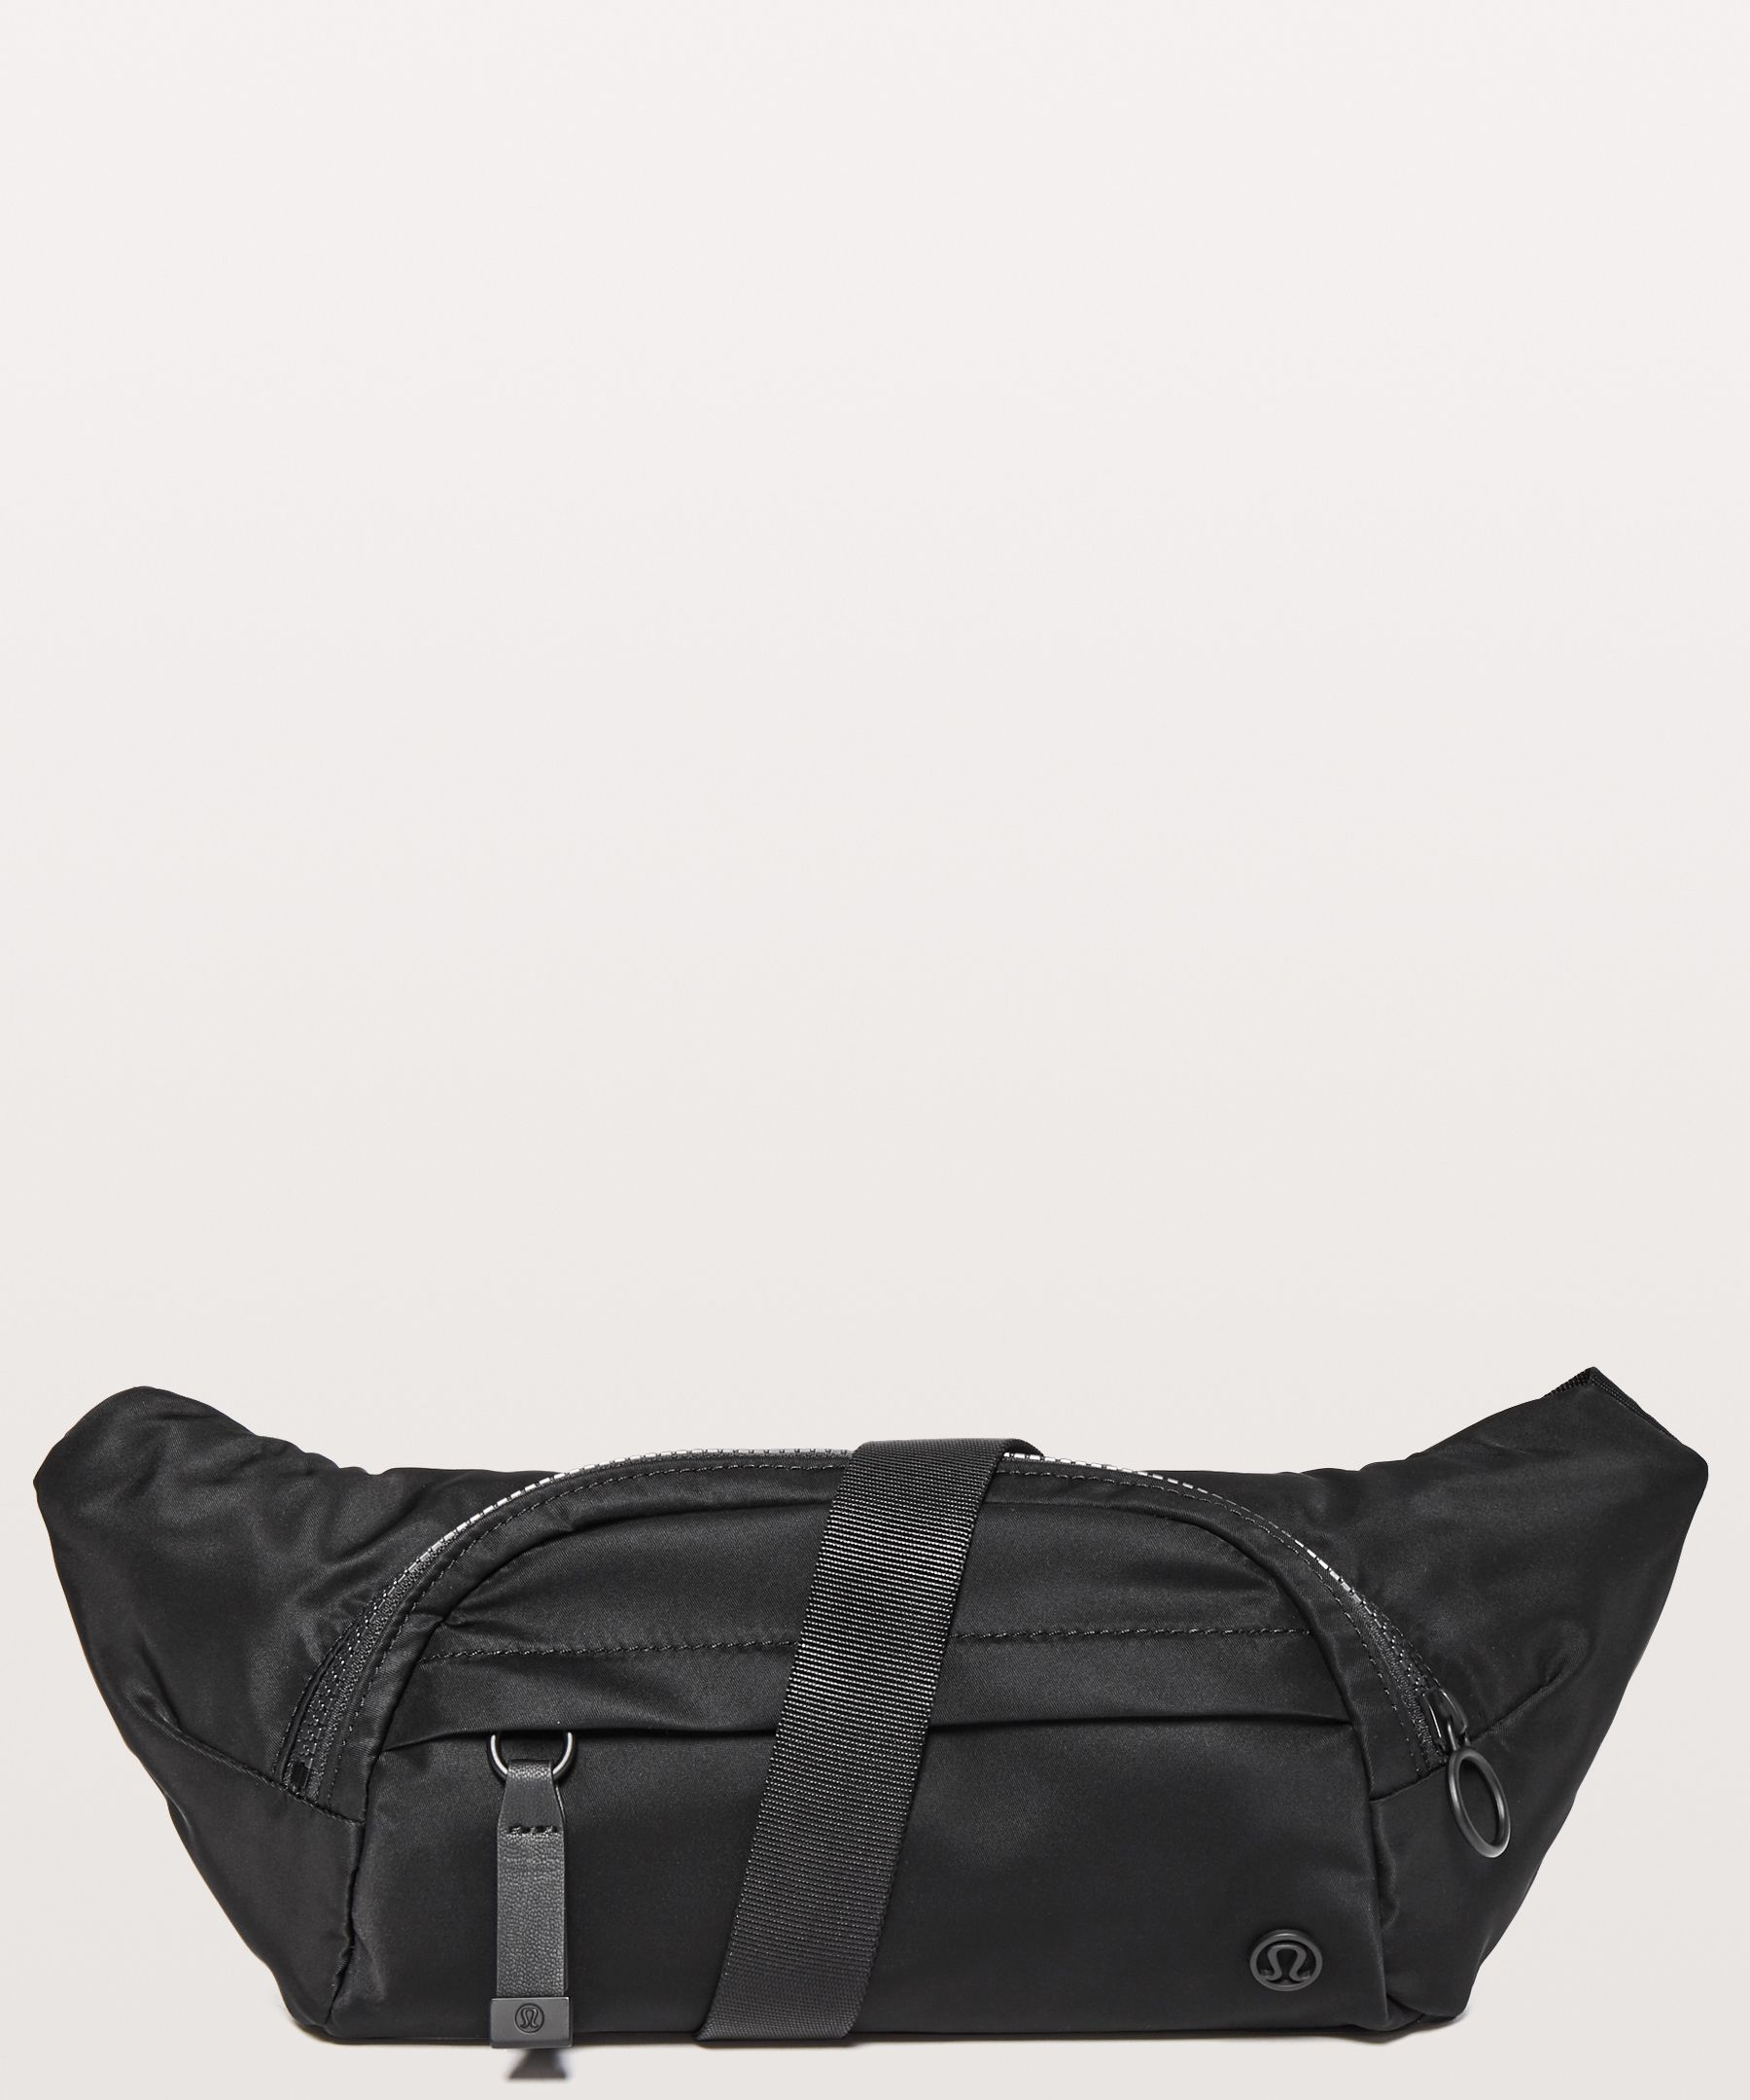 black On The Beat Belt Bag 4.5L